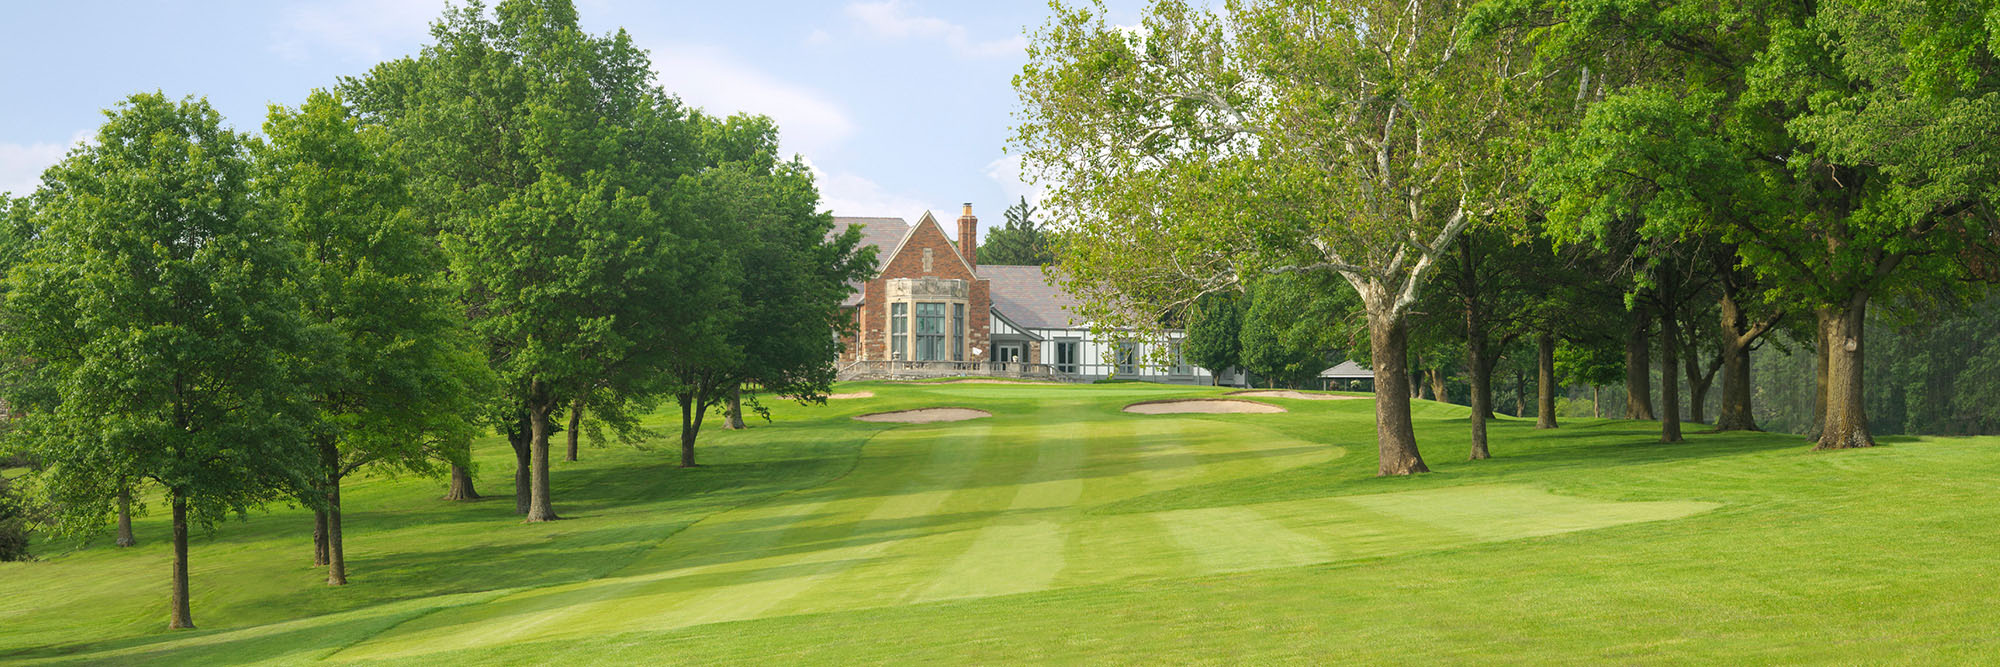 Golf Course Image - Oakwood Country Club No. 9